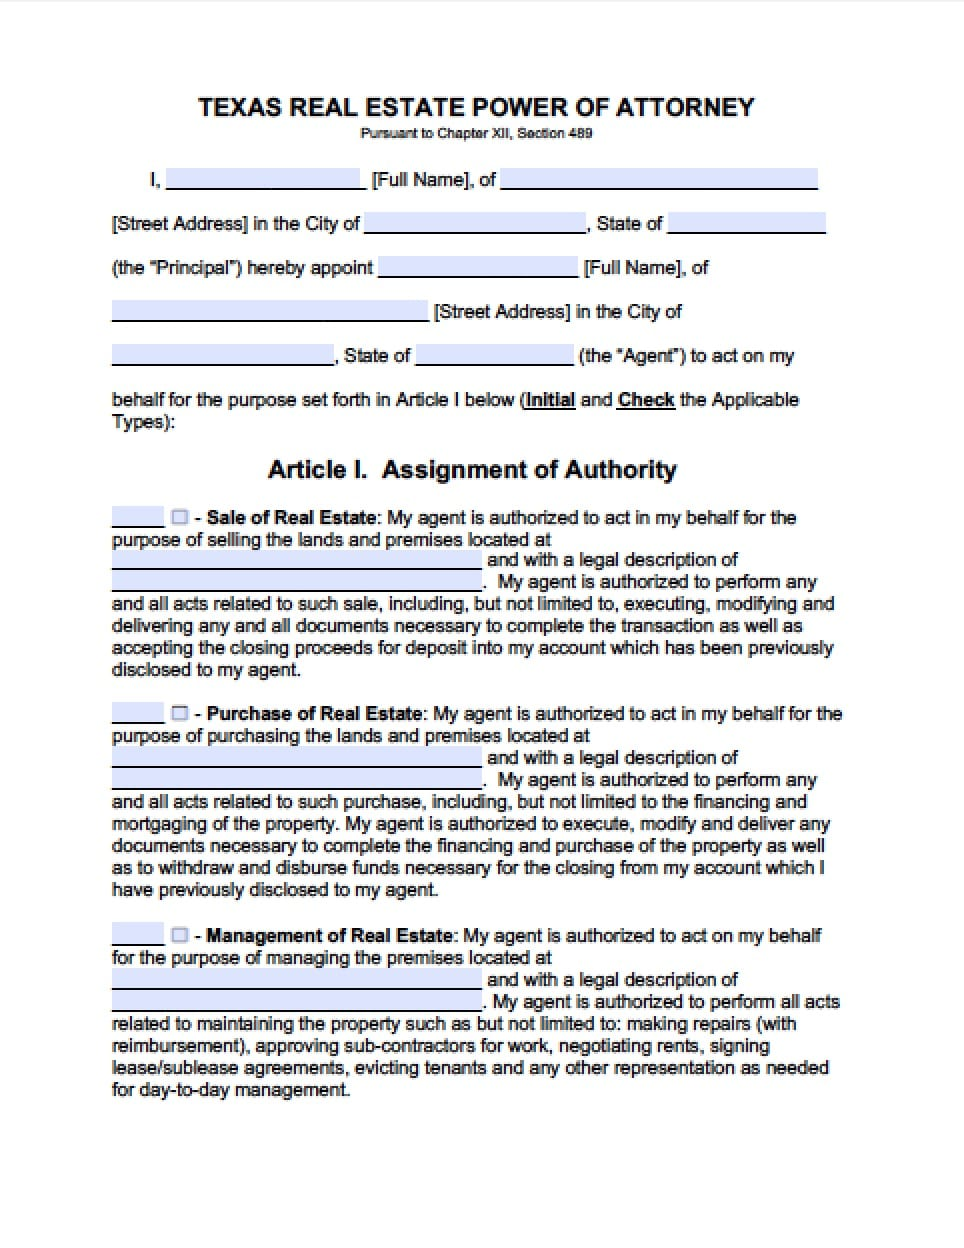 power of attorney form filled out  Texas Real Estate ONLY Power of Attorney Form - Power of ...